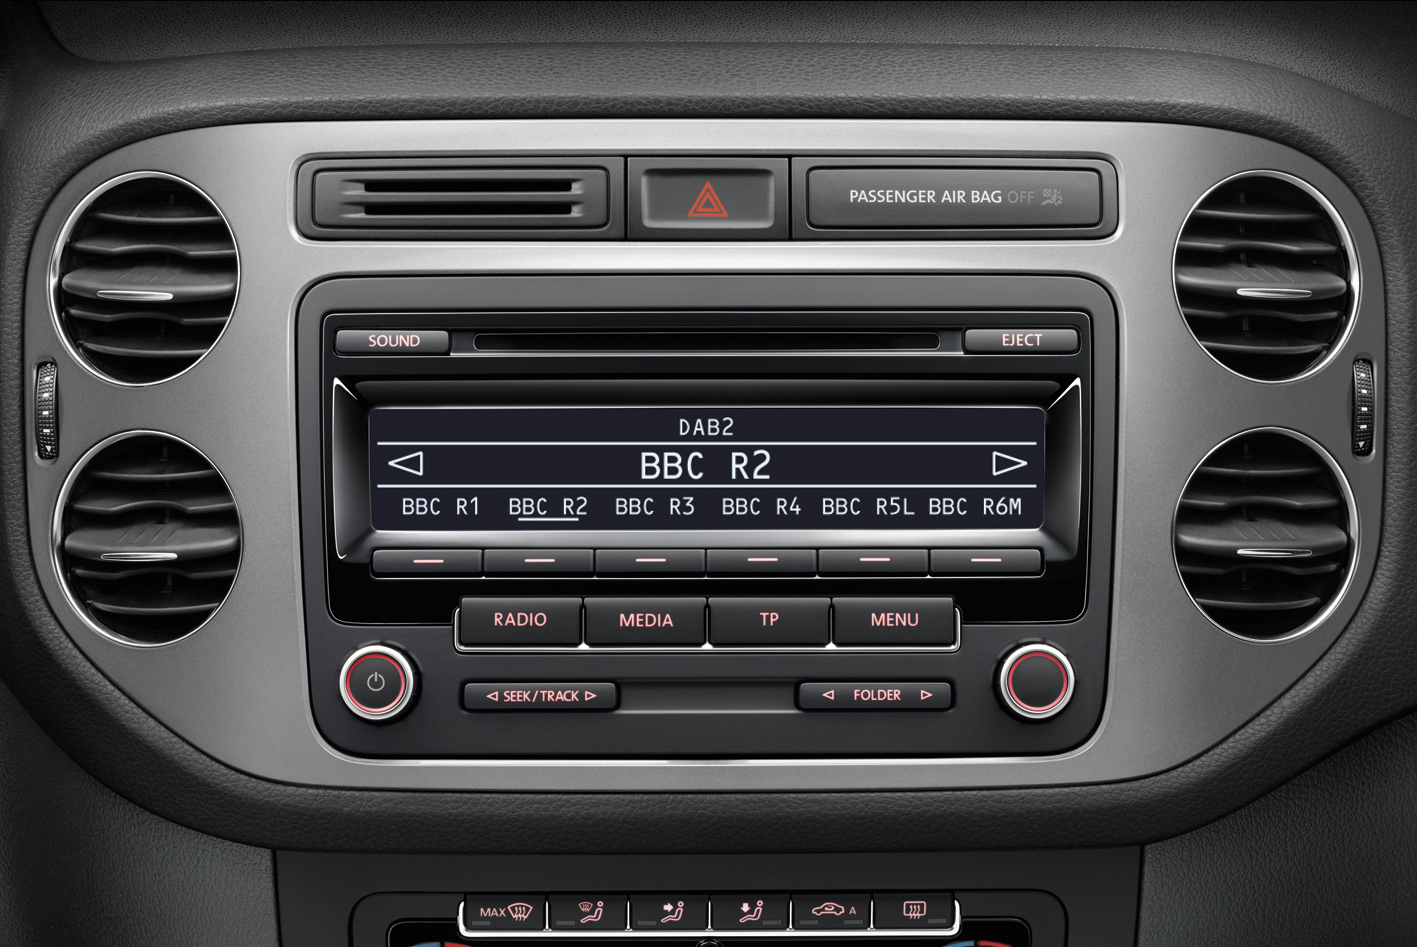 volkswagen uk standard dab radio from polo to phaeton. Black Bedroom Furniture Sets. Home Design Ideas